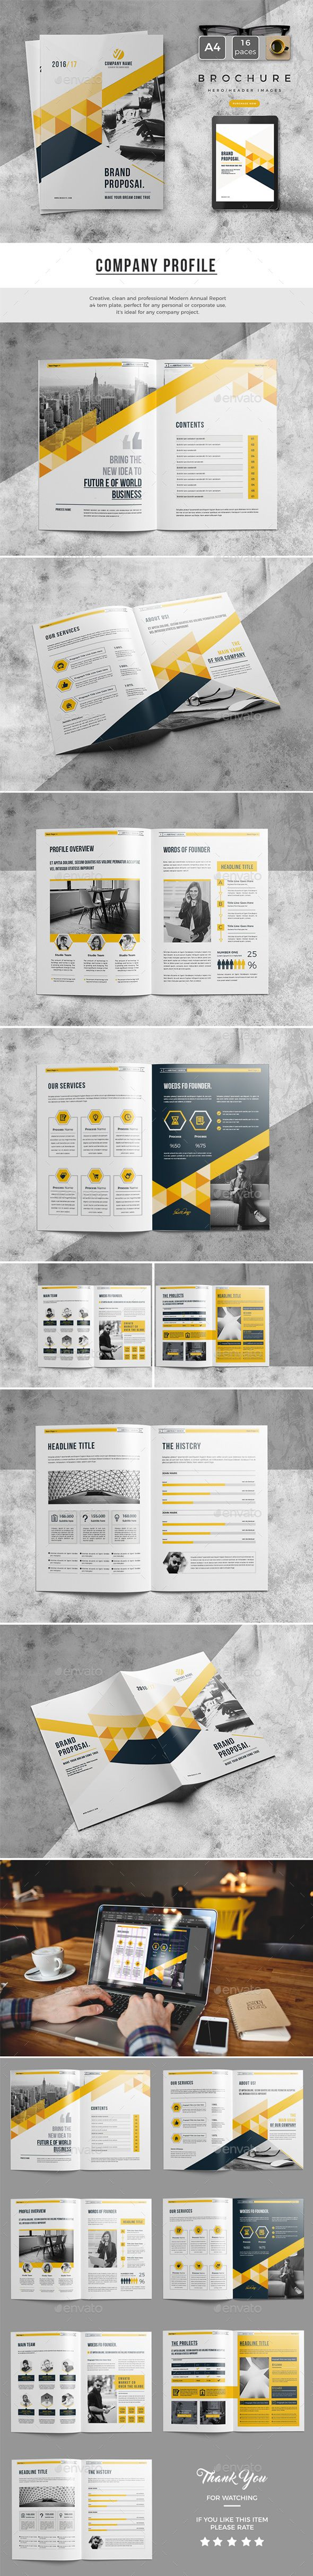 how to create a proposal template in word%0A Proposal       Business Proposal TemplateProposal TemplatesGraphic Design